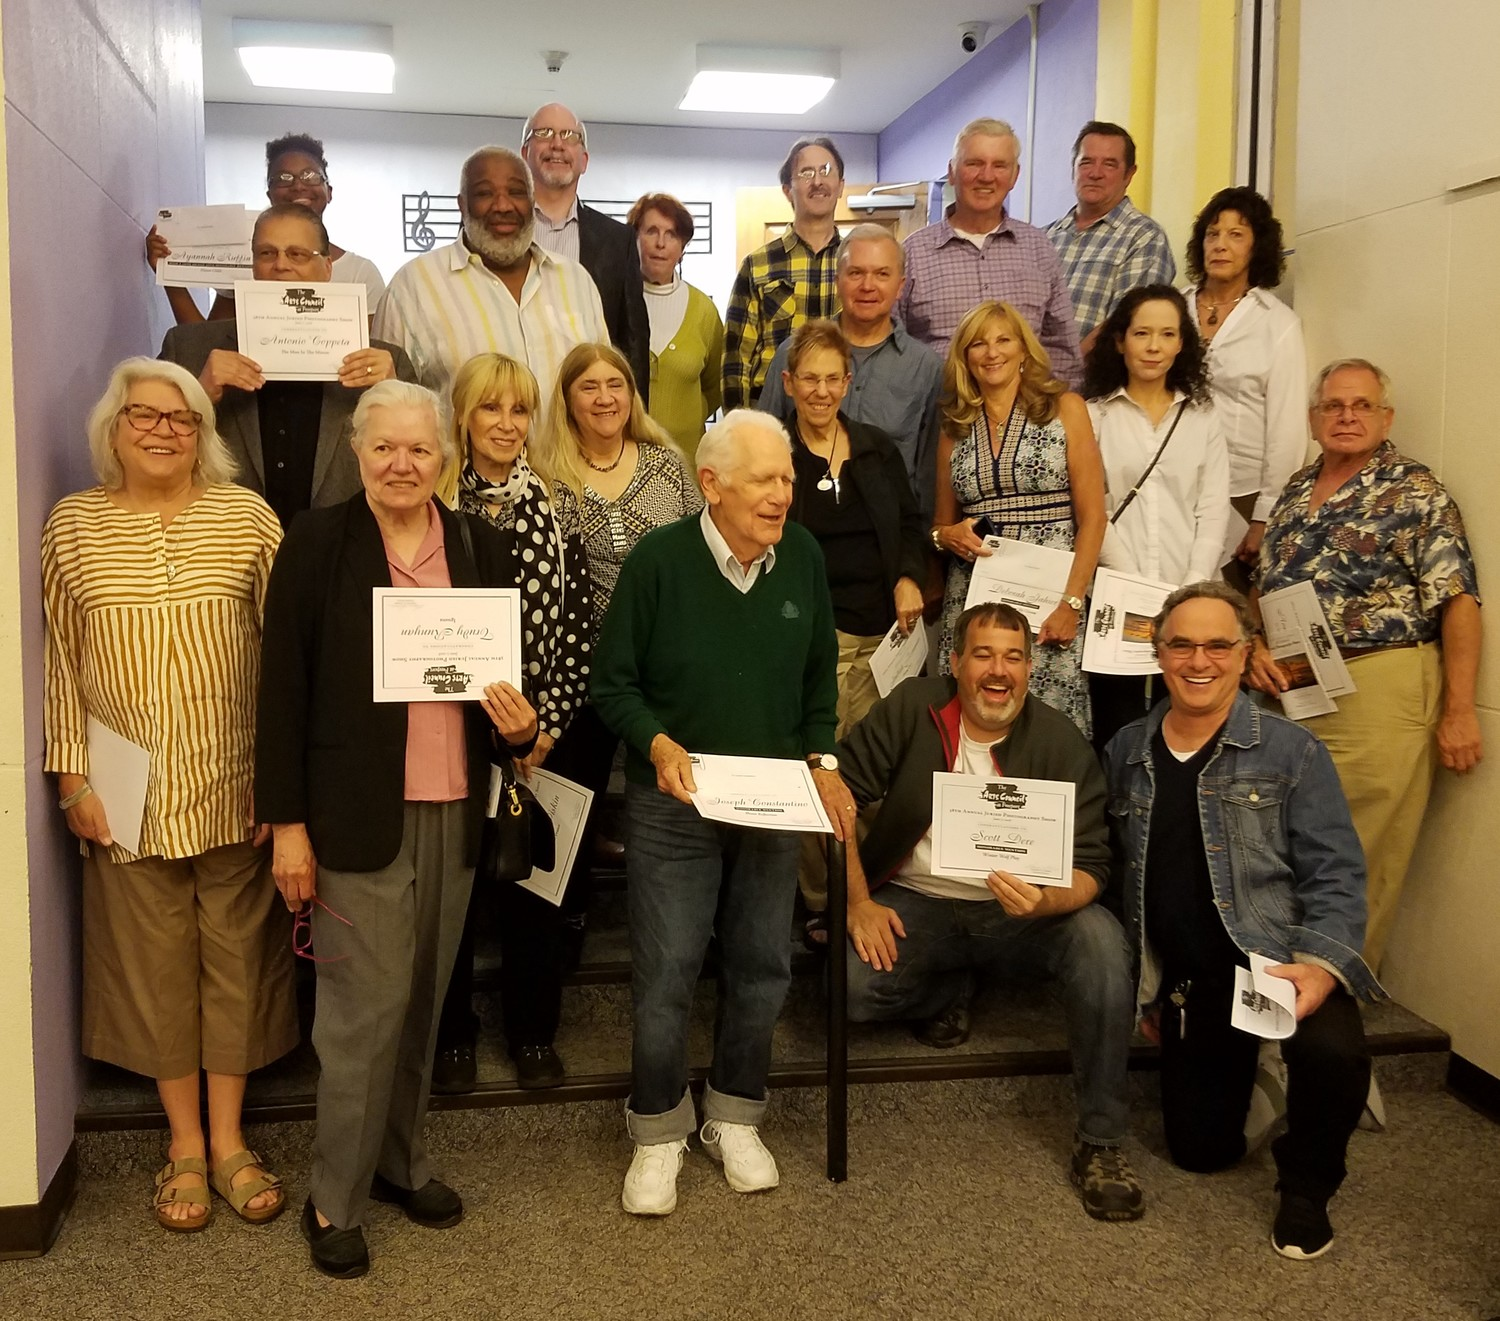 The 38th annual Juried Photography Show winners and honorable mentions showed off their certificates after the awards and artists reception at the Freeport Memorial Library.